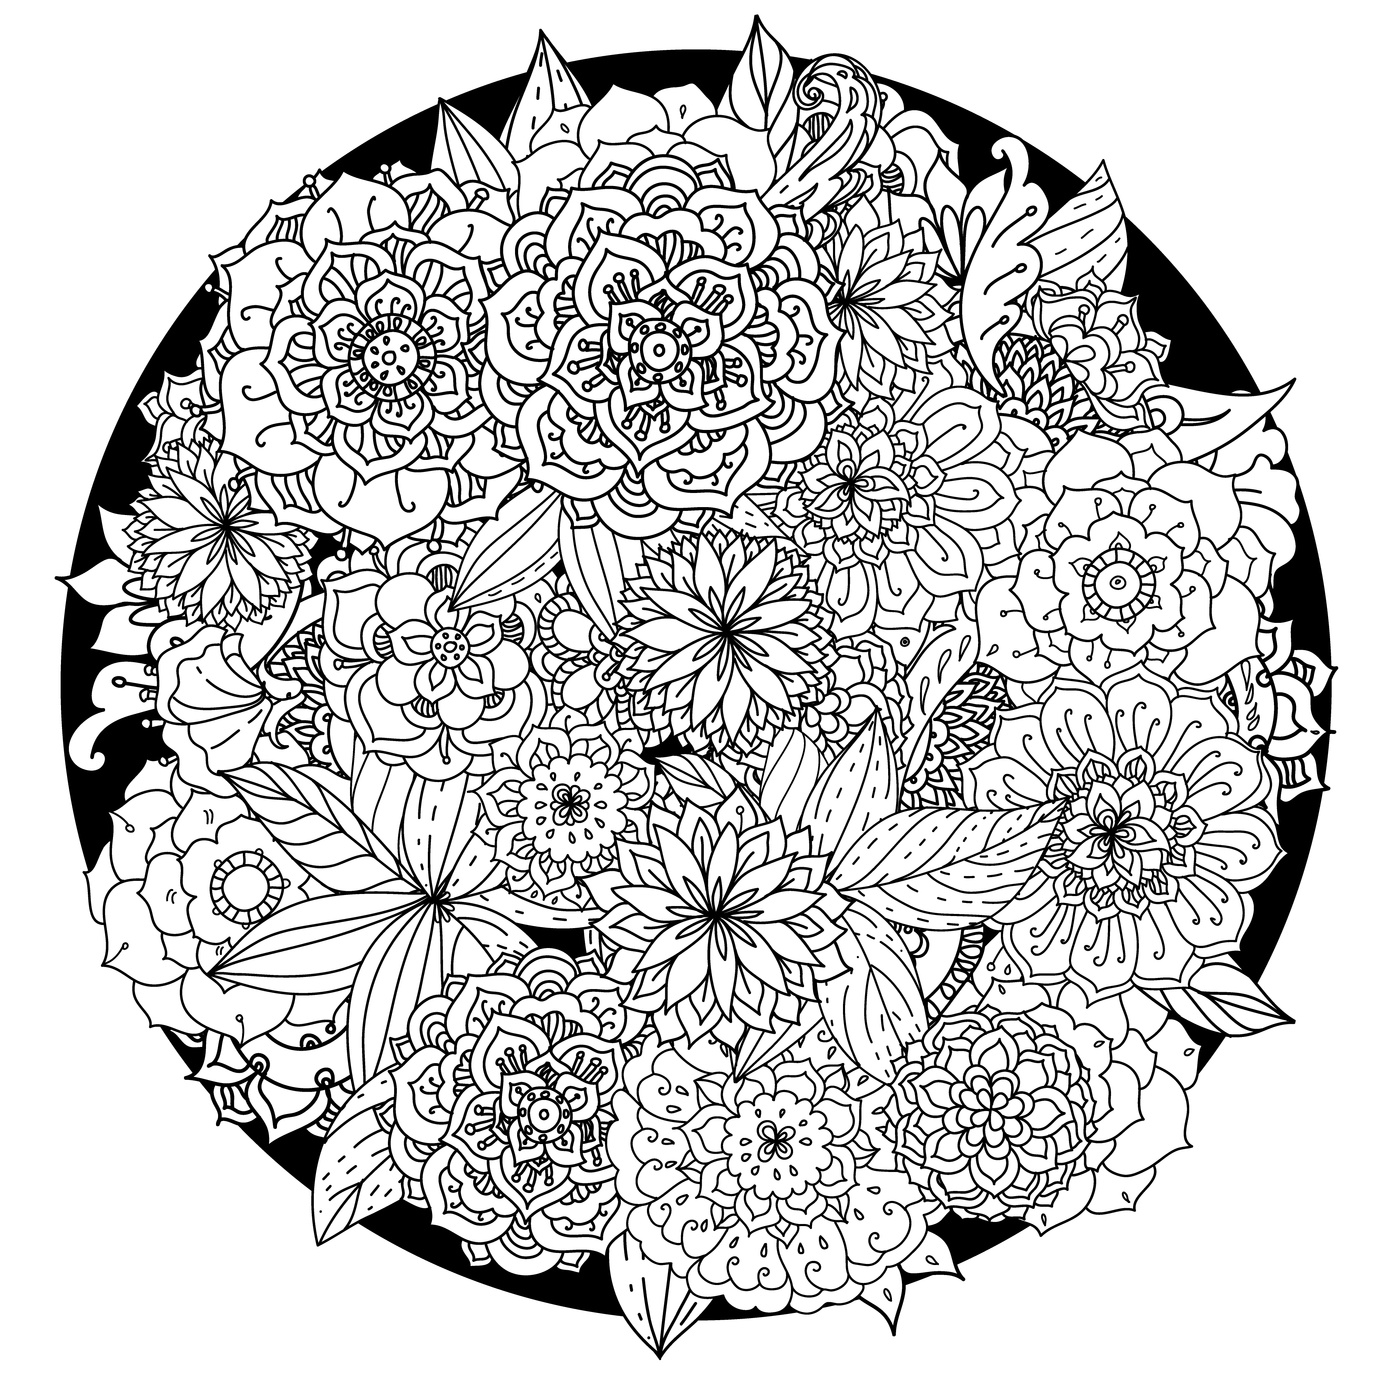 coloring pages for adults hd best hd flower mandala coloring pages for adults images for coloring pages hd adults